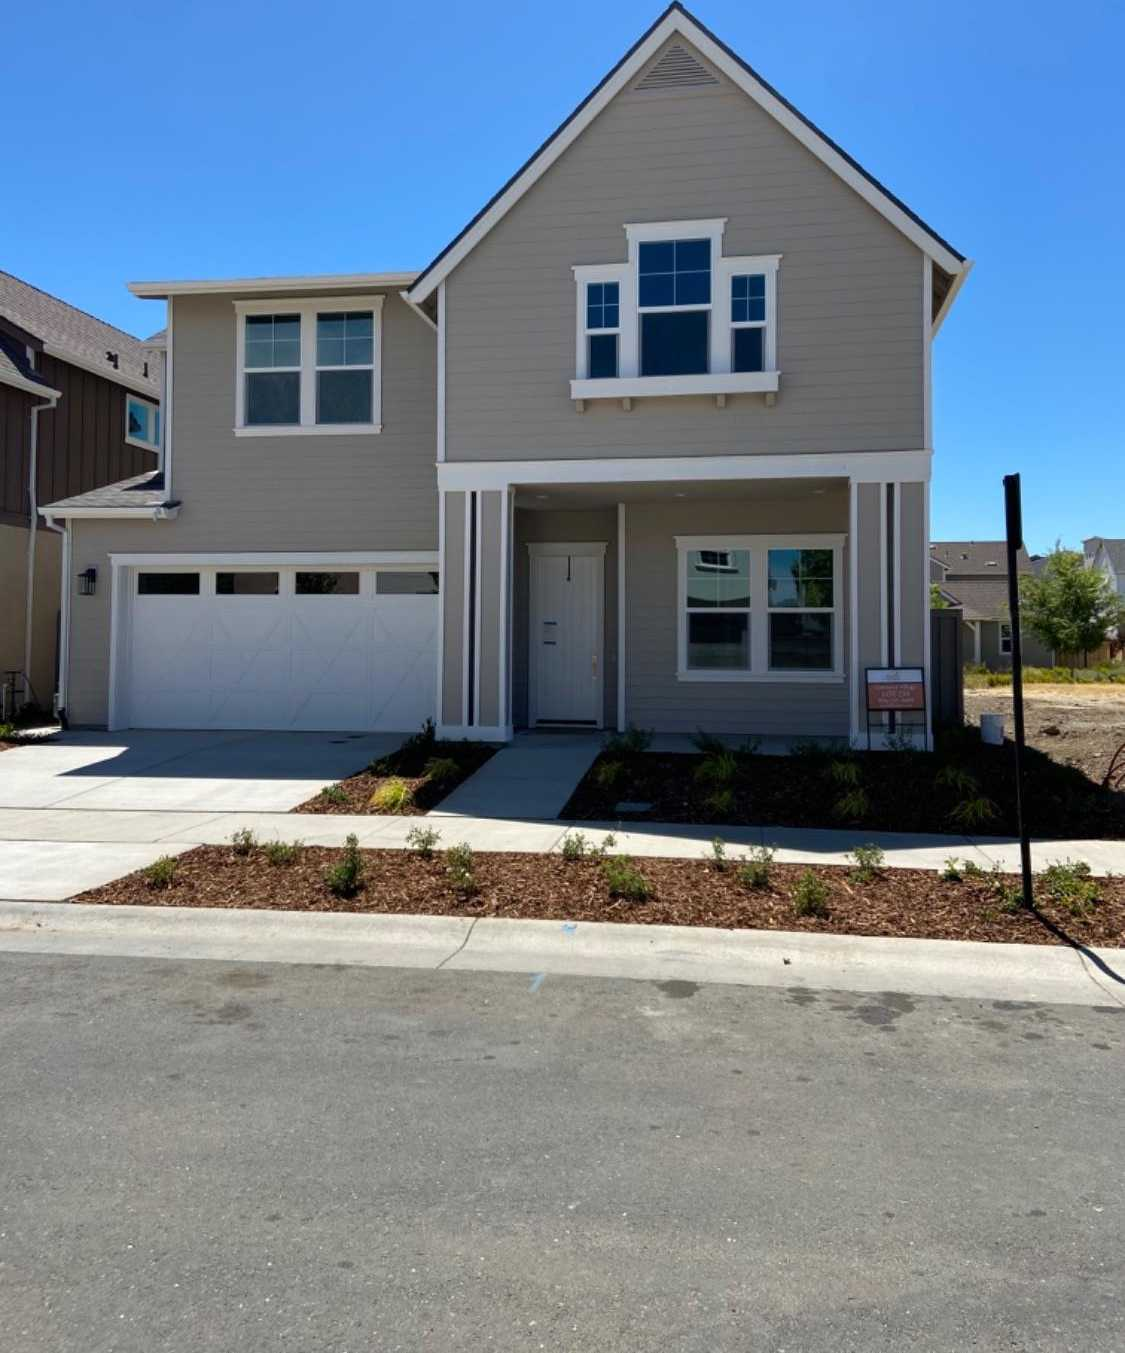 $1,022,750 - 5Br/4Ba -  for Sale in Davis